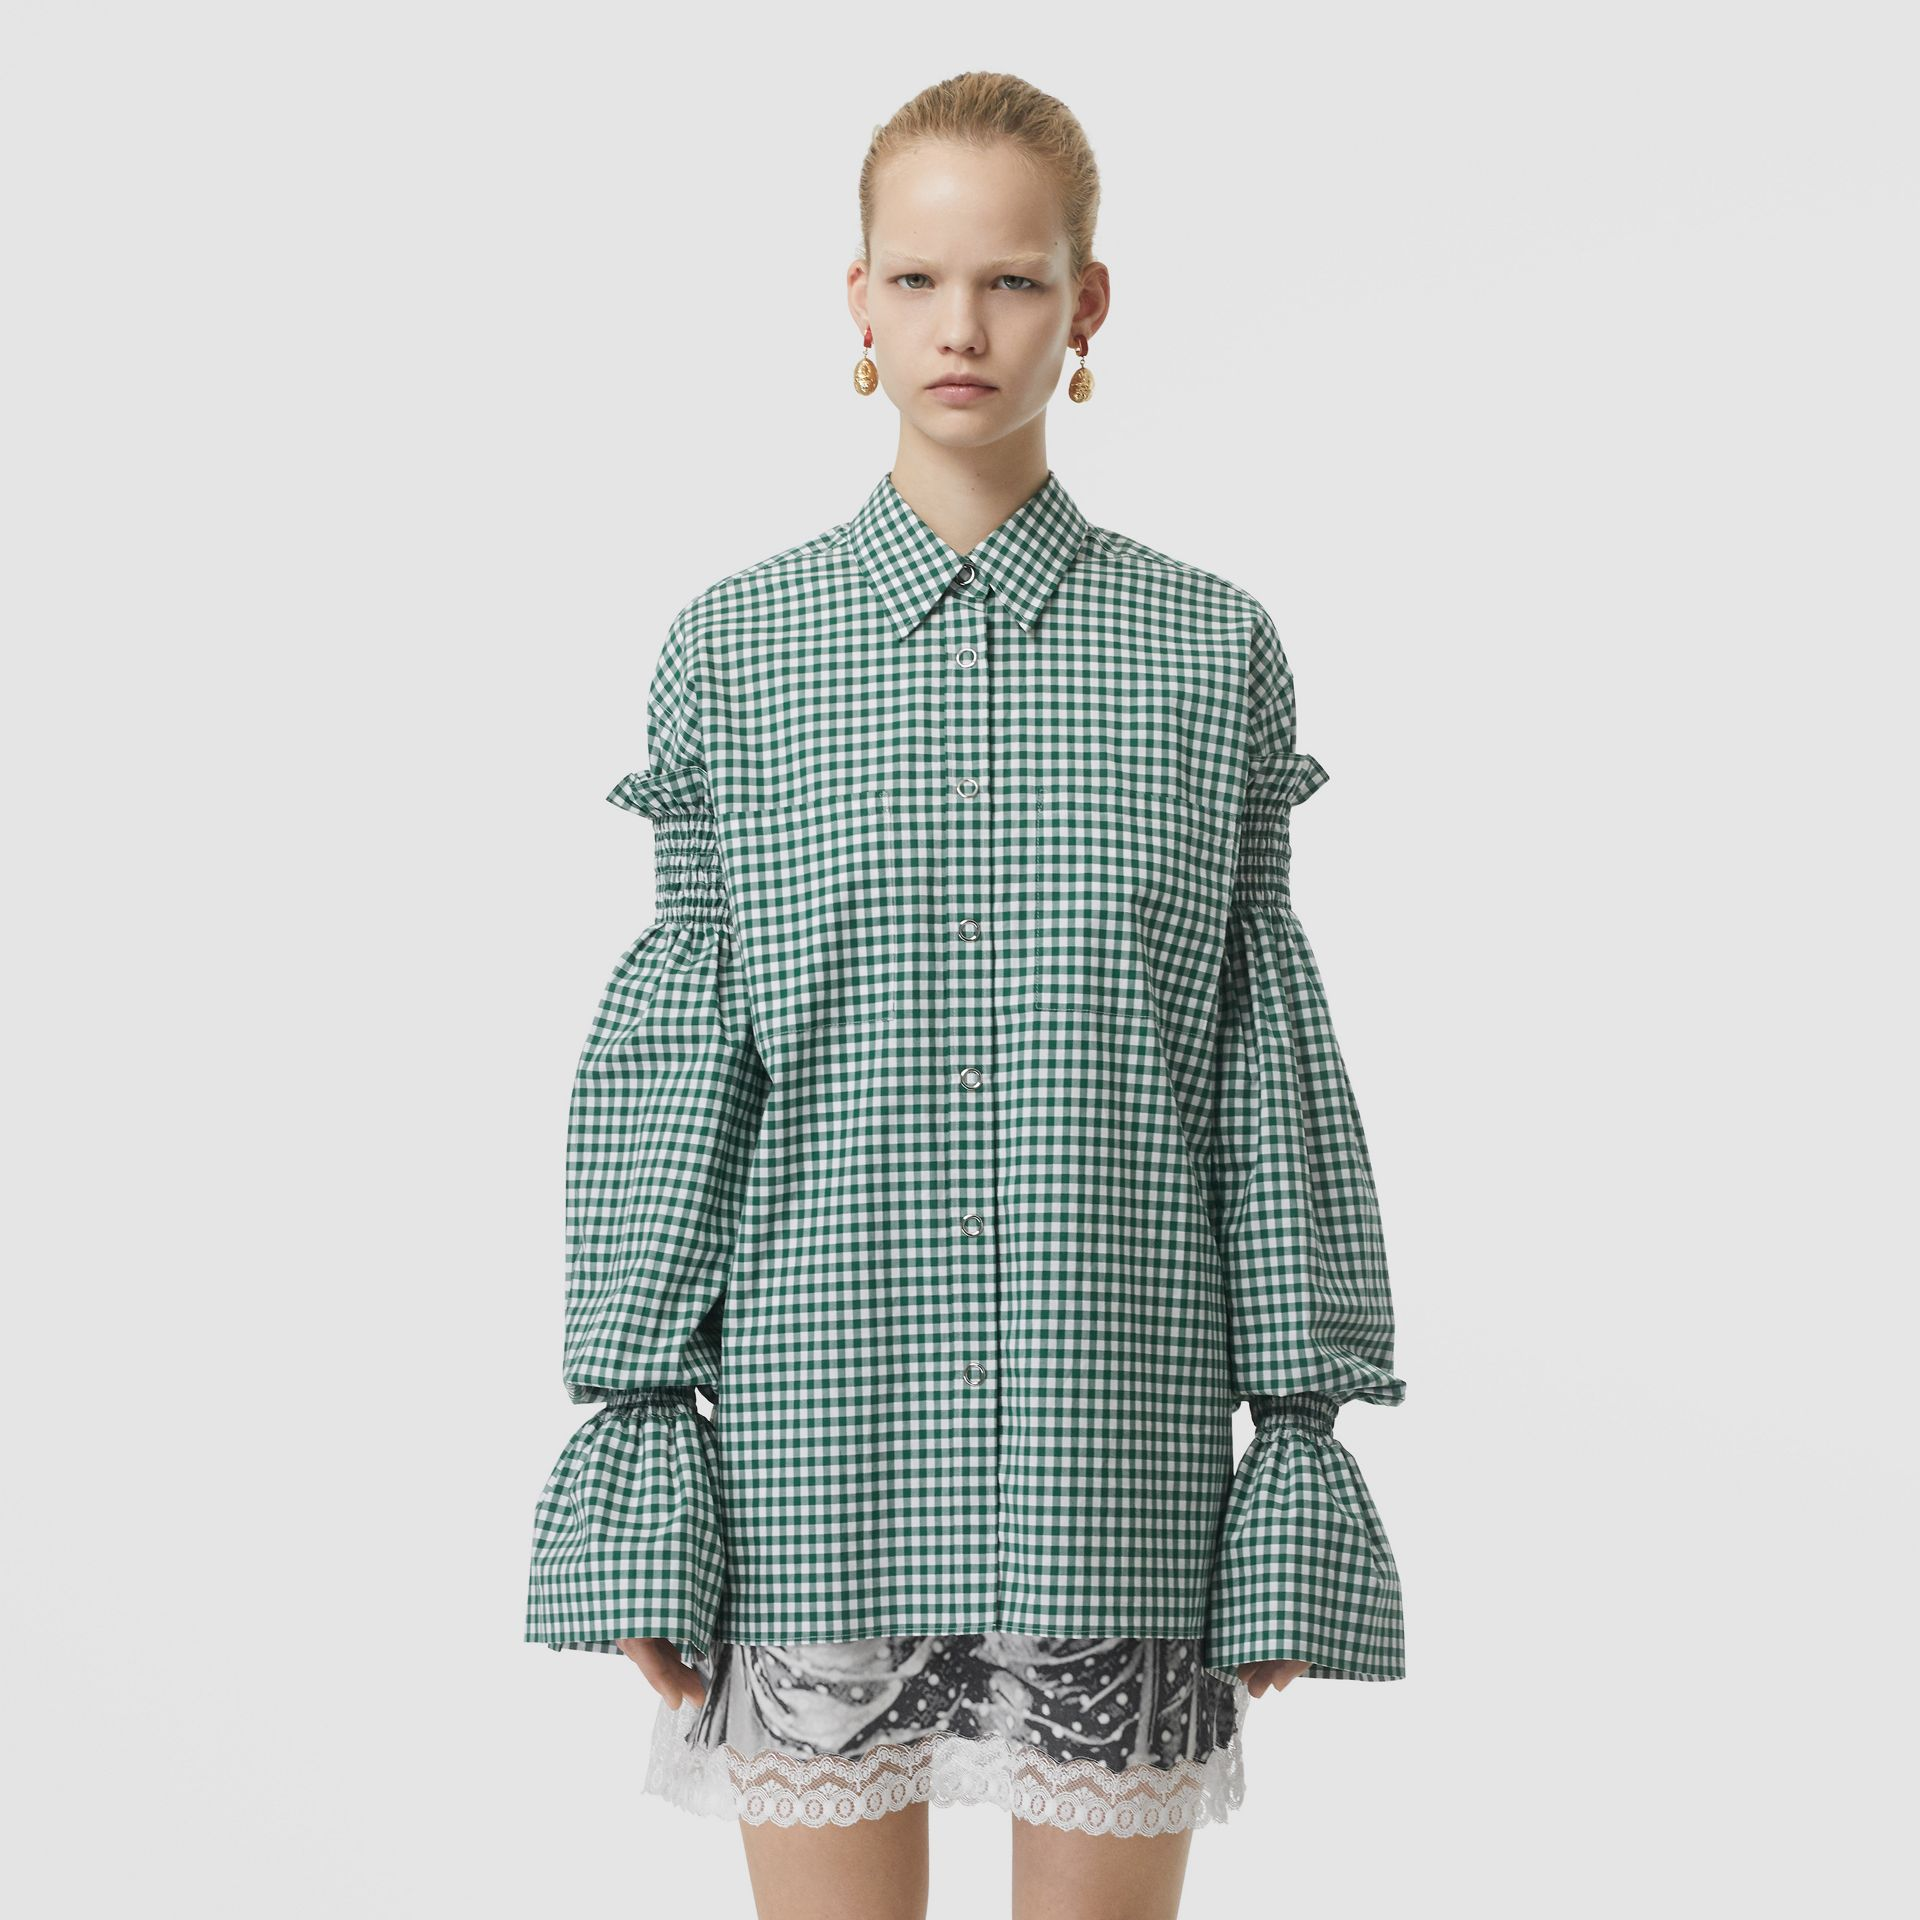 Puff-sleeve Gingham Cotton Shirt in White/green - Women | Burberry Singapore - gallery image 5